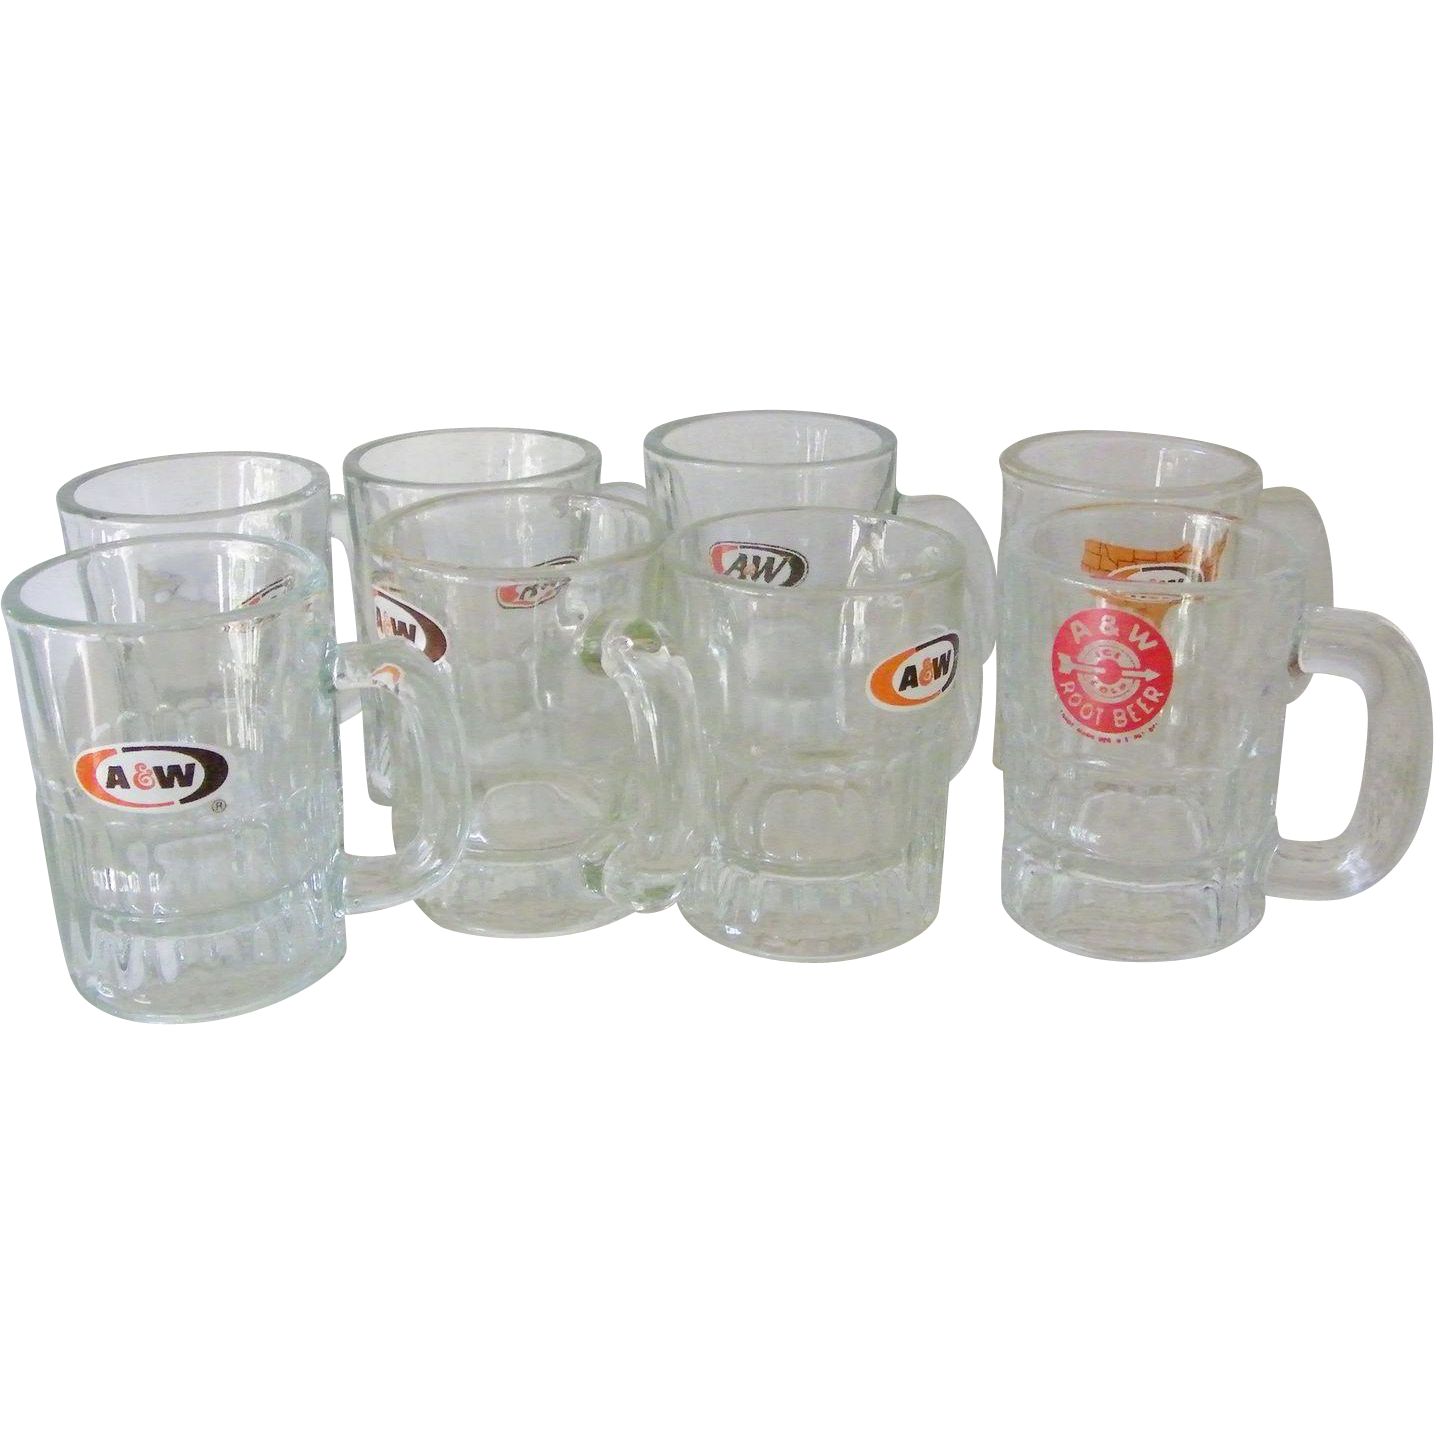 Ten Child size A&W Root Beer Glass Mugs